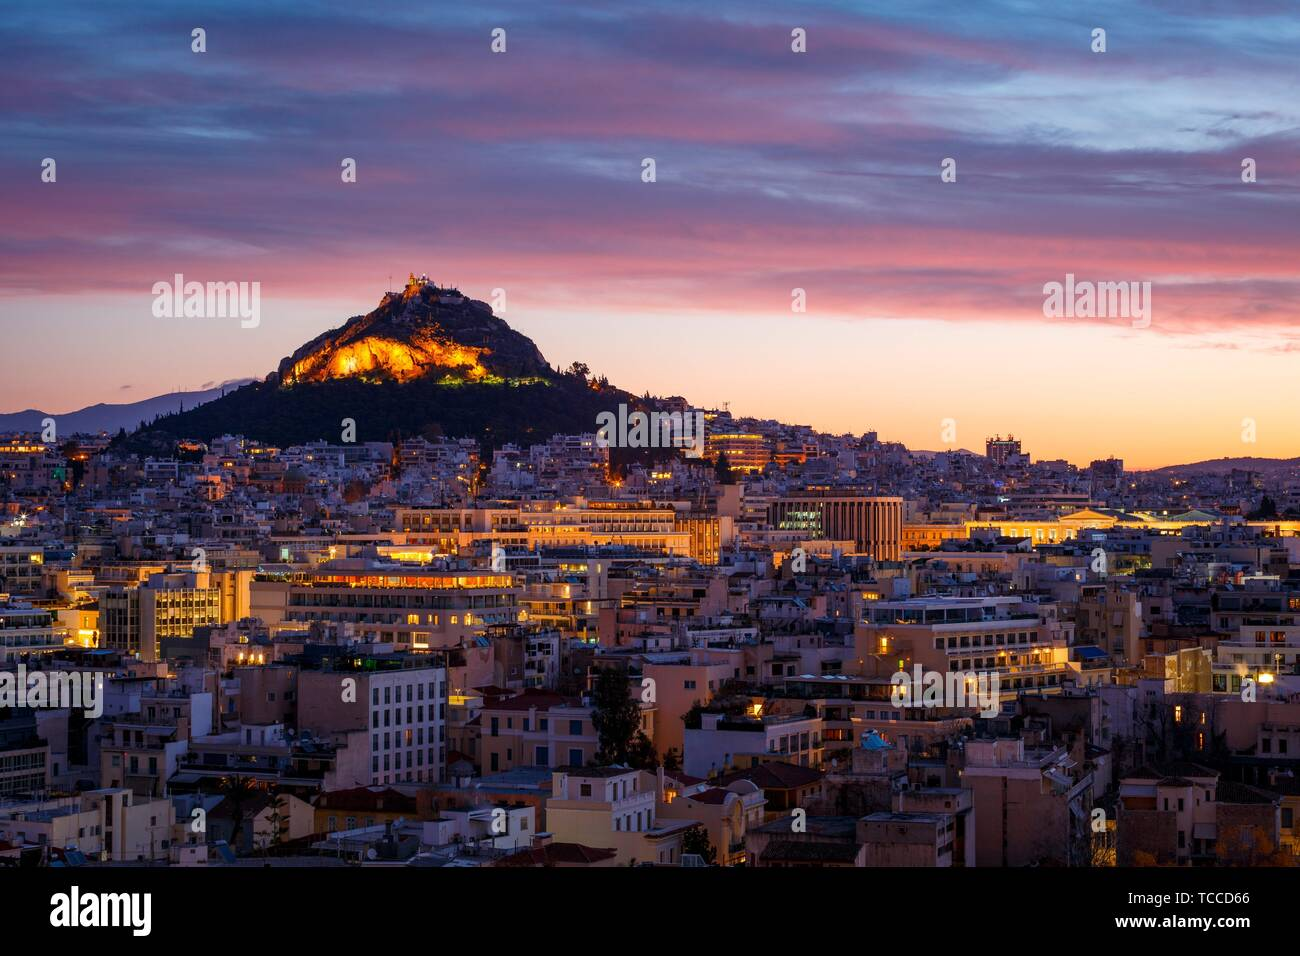 View of Lycabettus hill from Anafiotika neighborhood in the old town of Athens, Greece.. Stock Photo